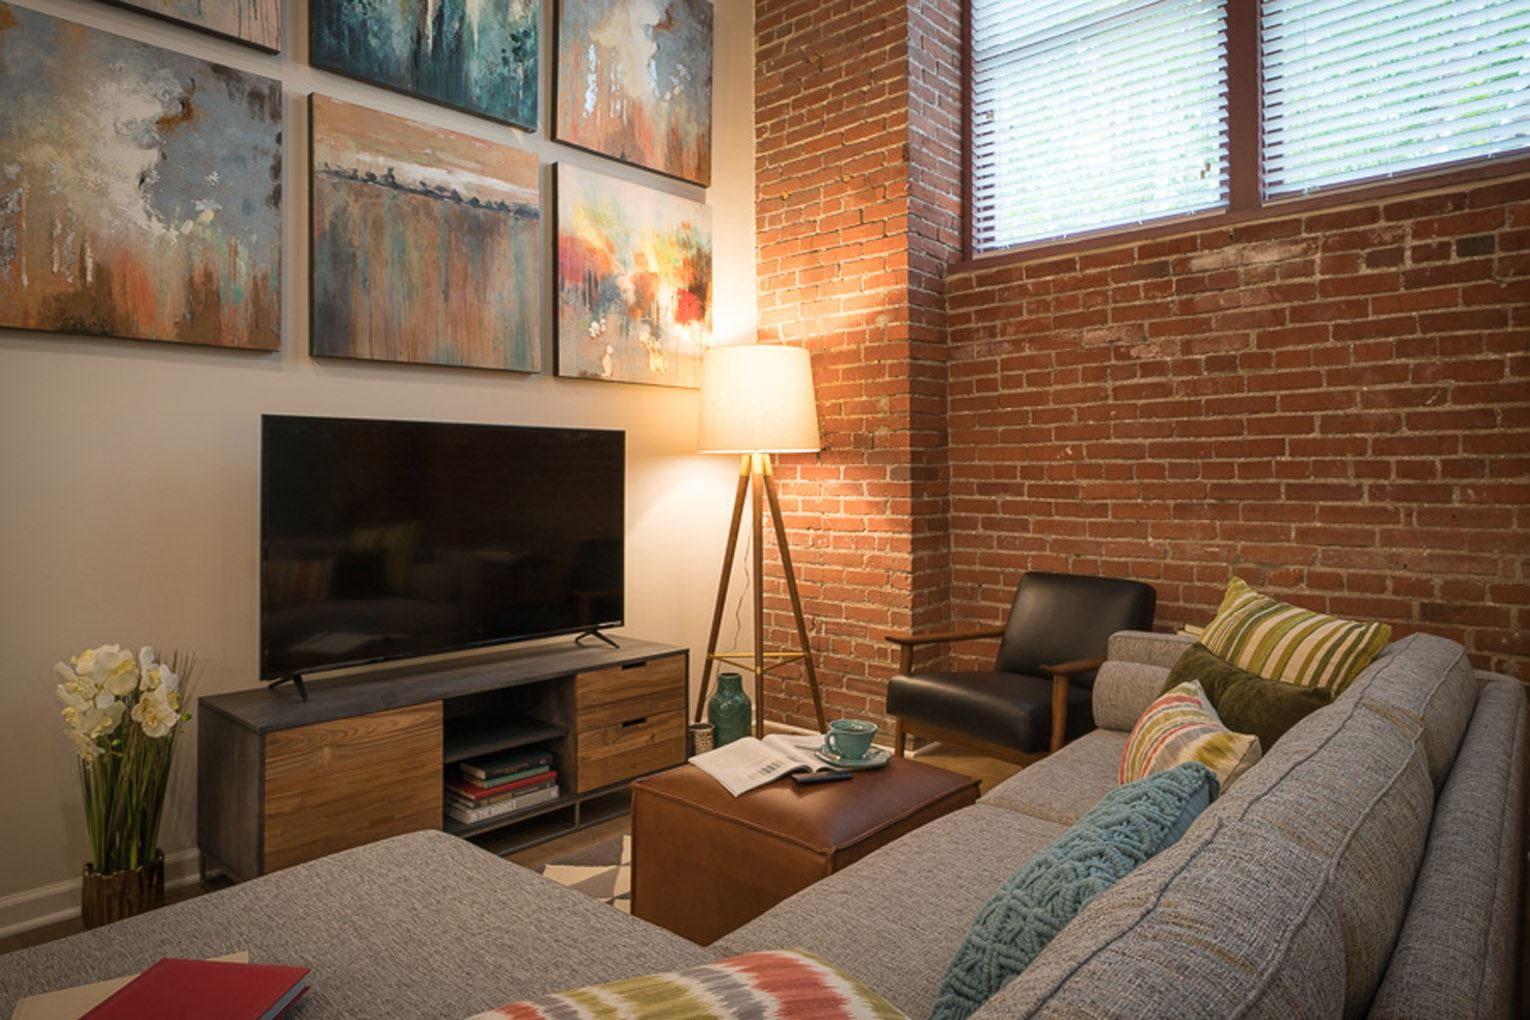 1 Bedroom Apartments Shadyside 28 Images Pittsburgh Luxury Apartments Executive Home Rental